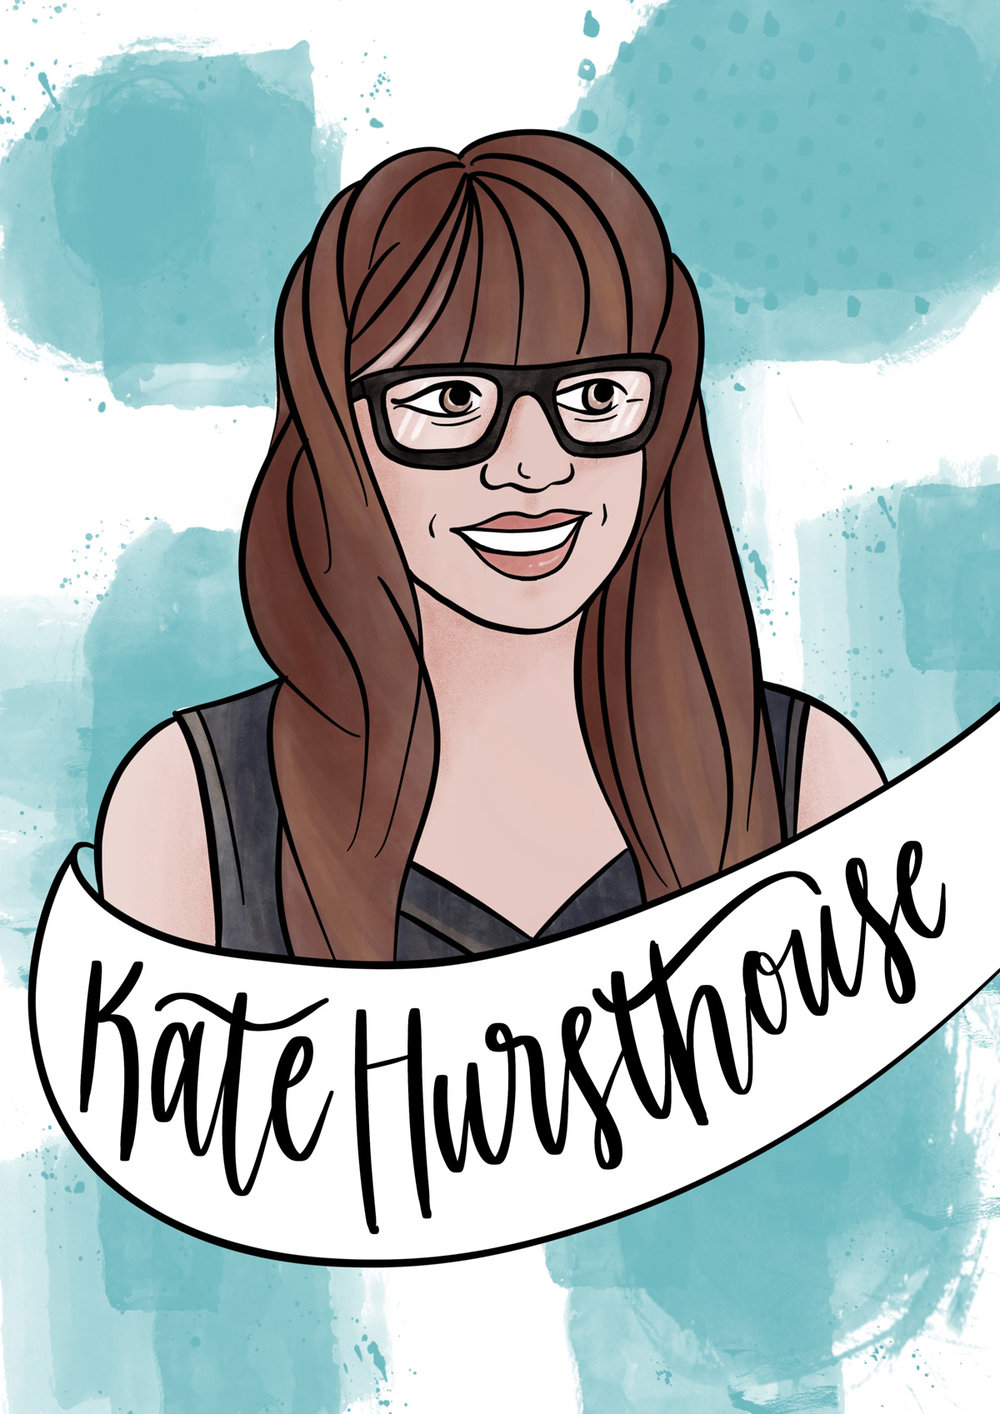 Kate_Hursthouse_Illustrator.jpg